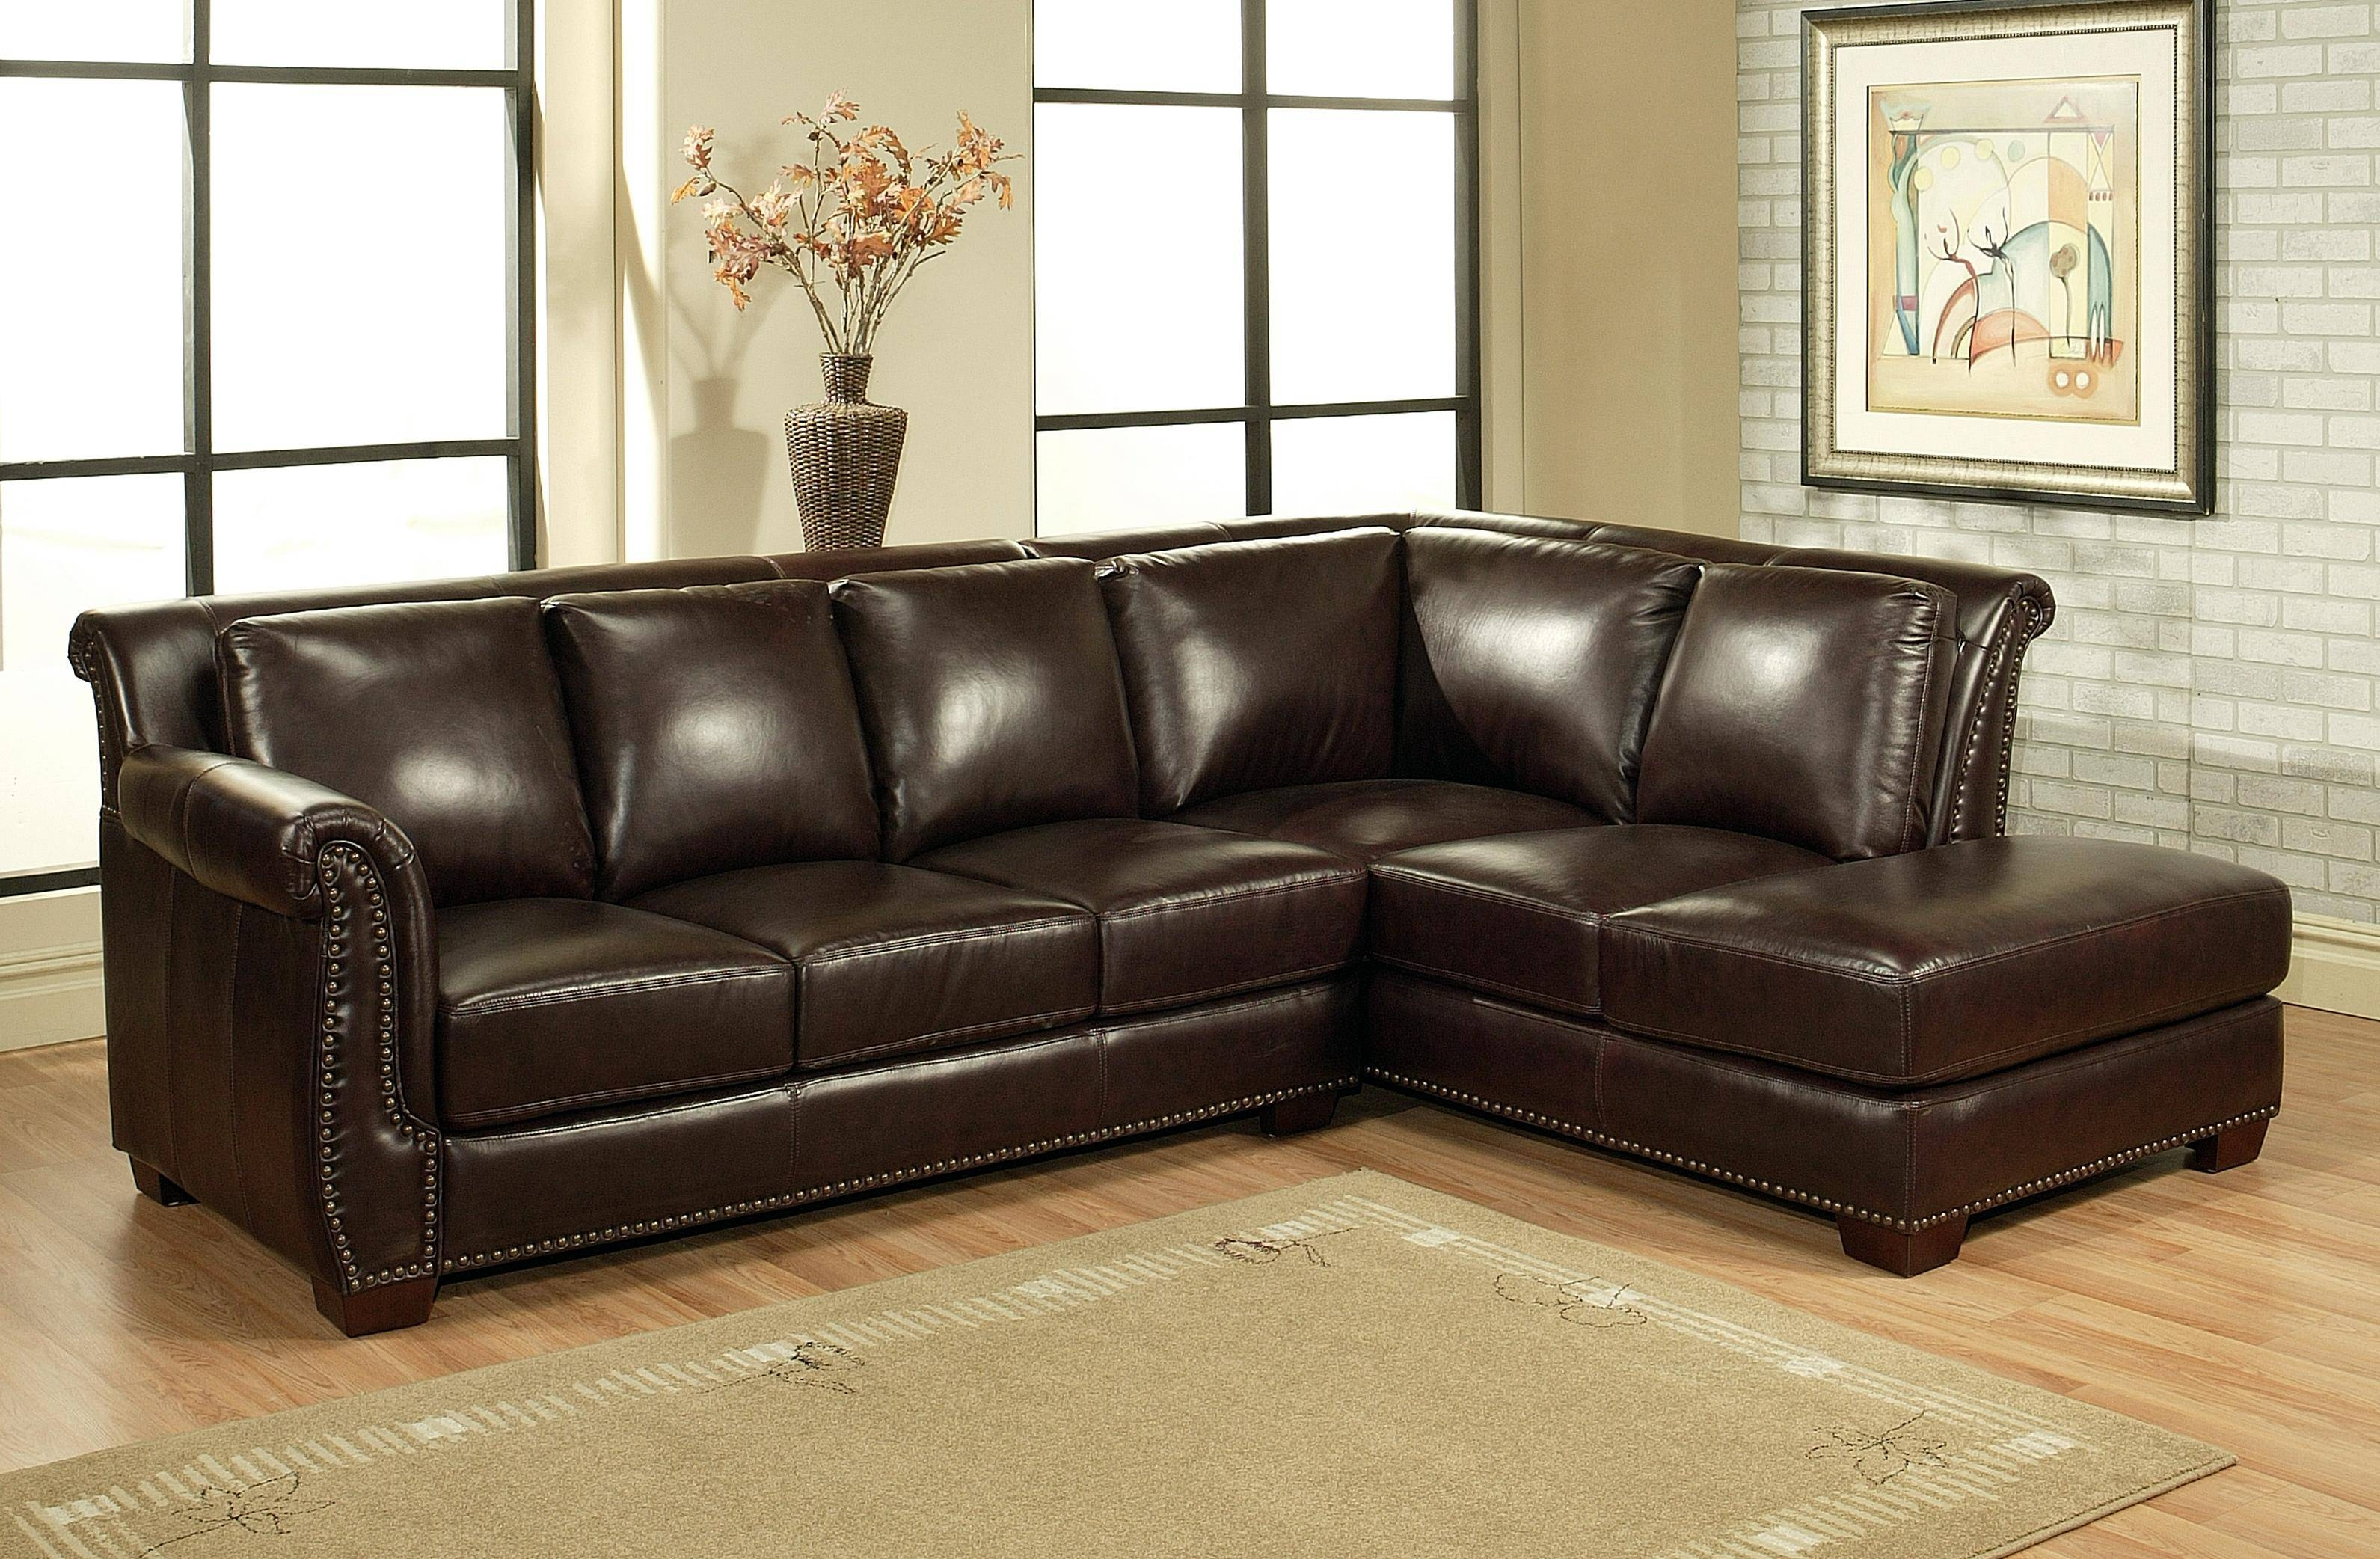 Sofa Leather Sectional Intended For Abbyson Sectional Sofas (View 13 of 15)